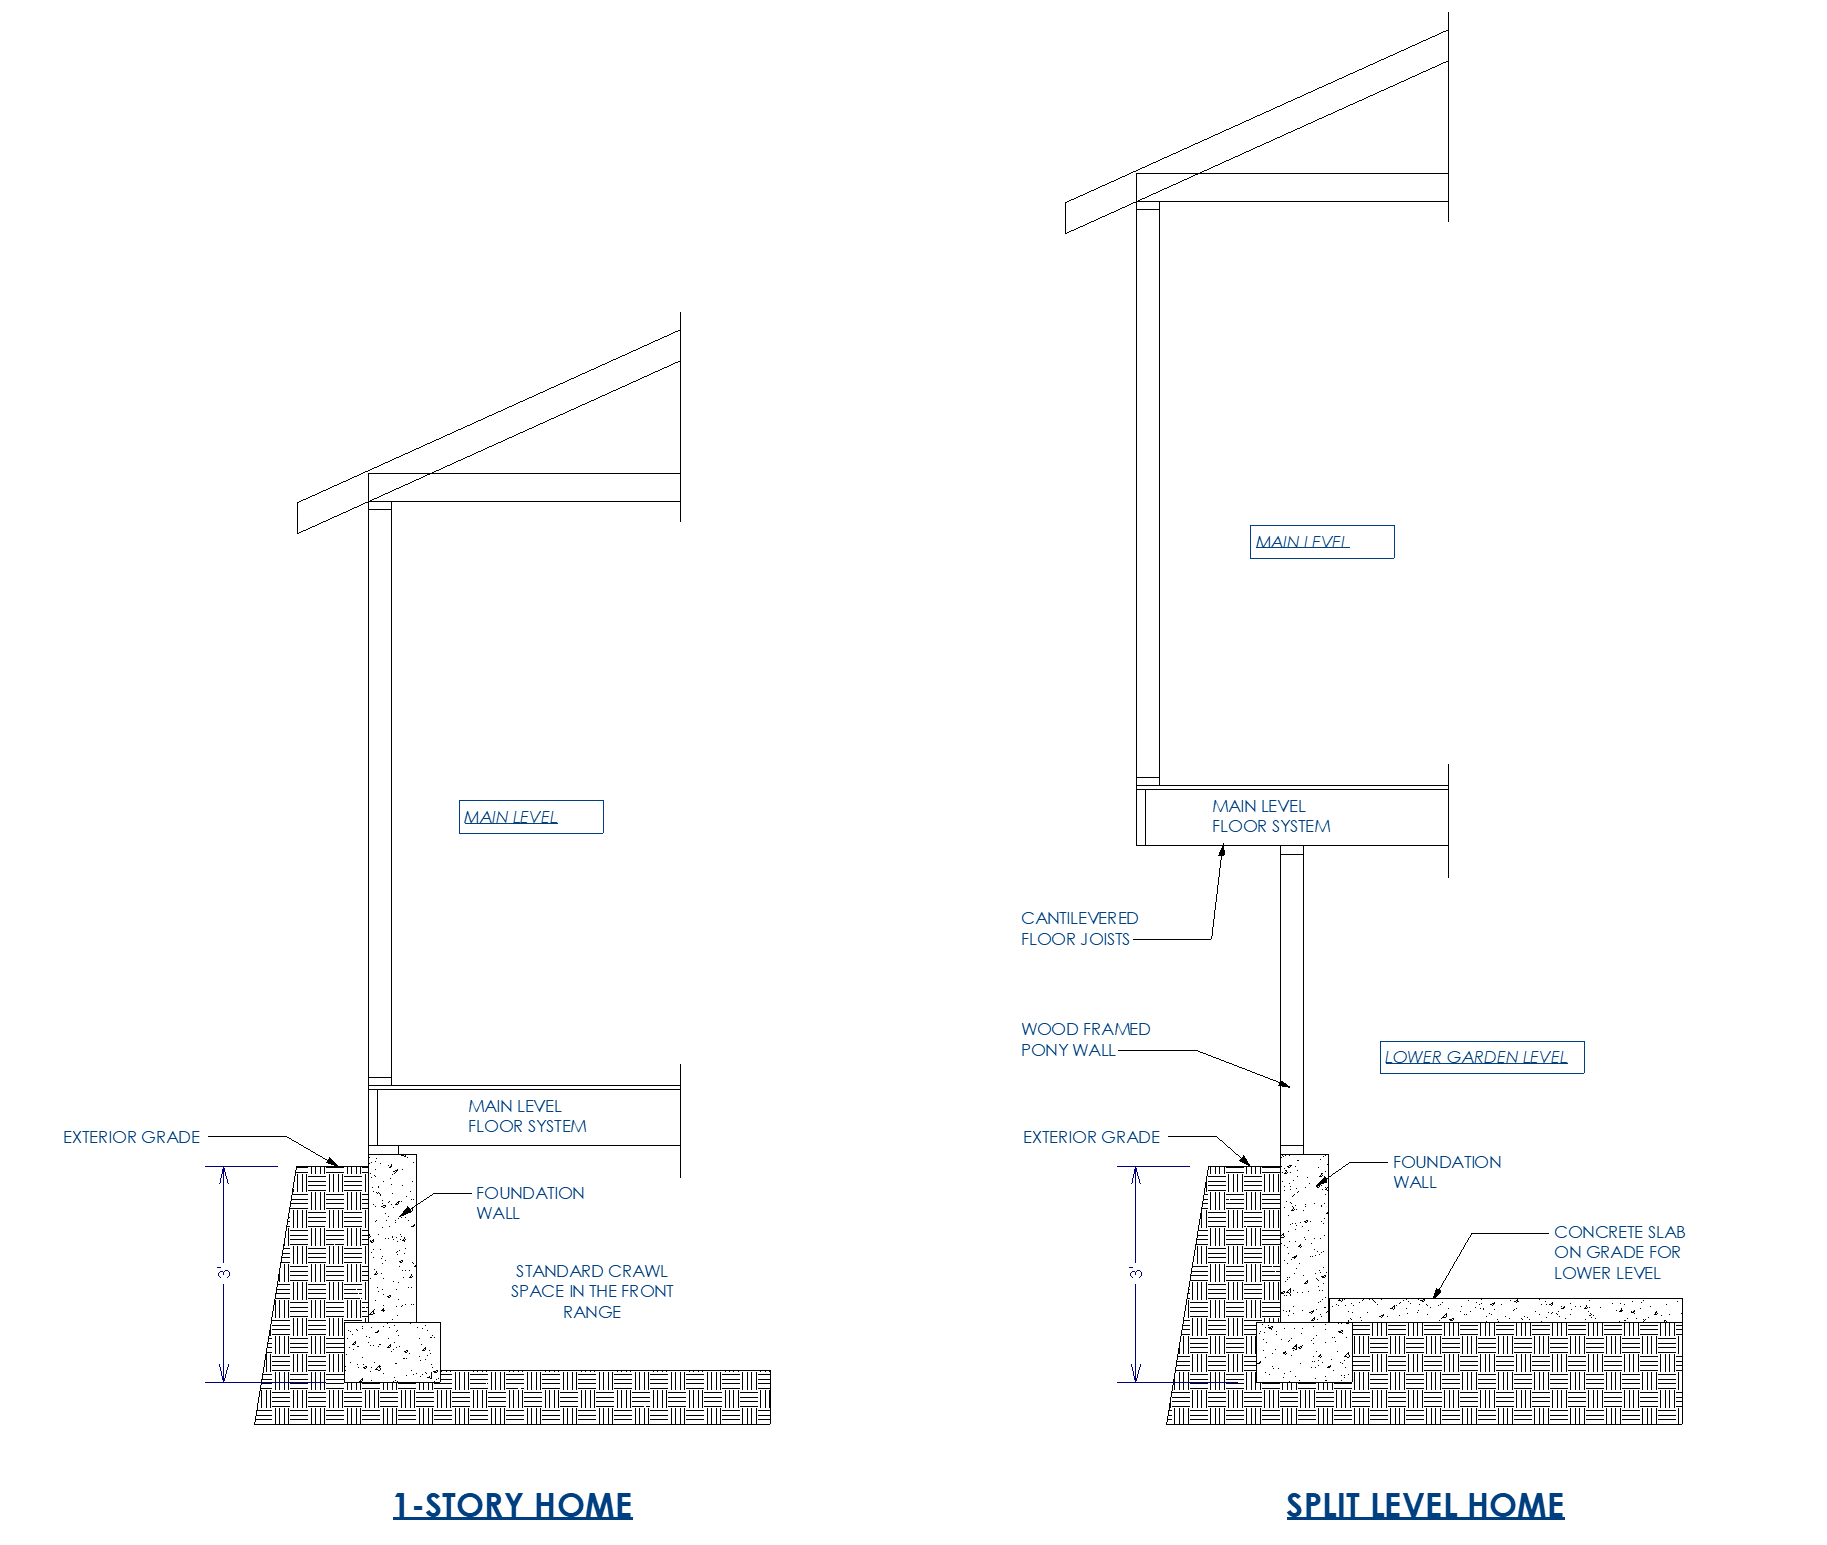 Difference between 1-story home and split level home